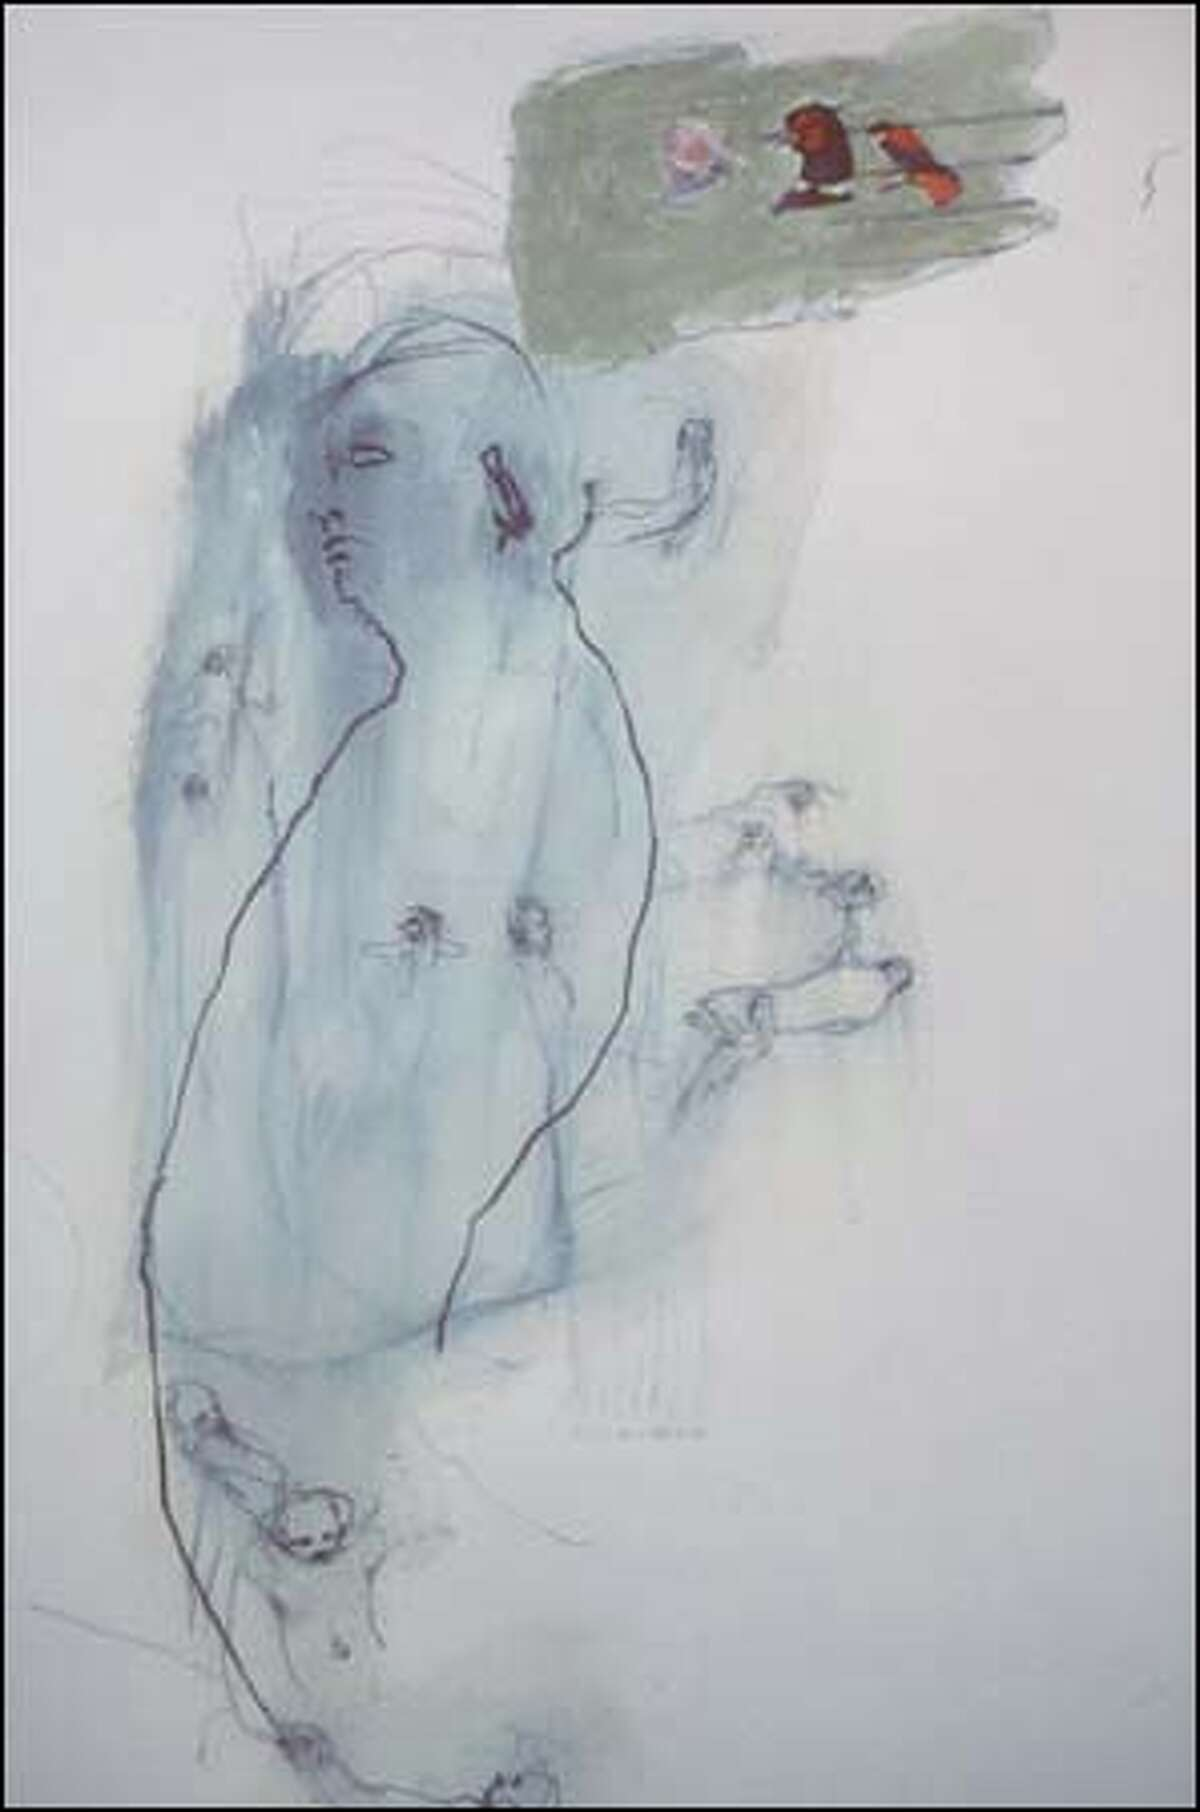 """The drawings of Pam Keeley, such as """"Like Mercury"""" (detail shown), look like life: sketchy, ambiguous and lit by moments of connection and understanding."""